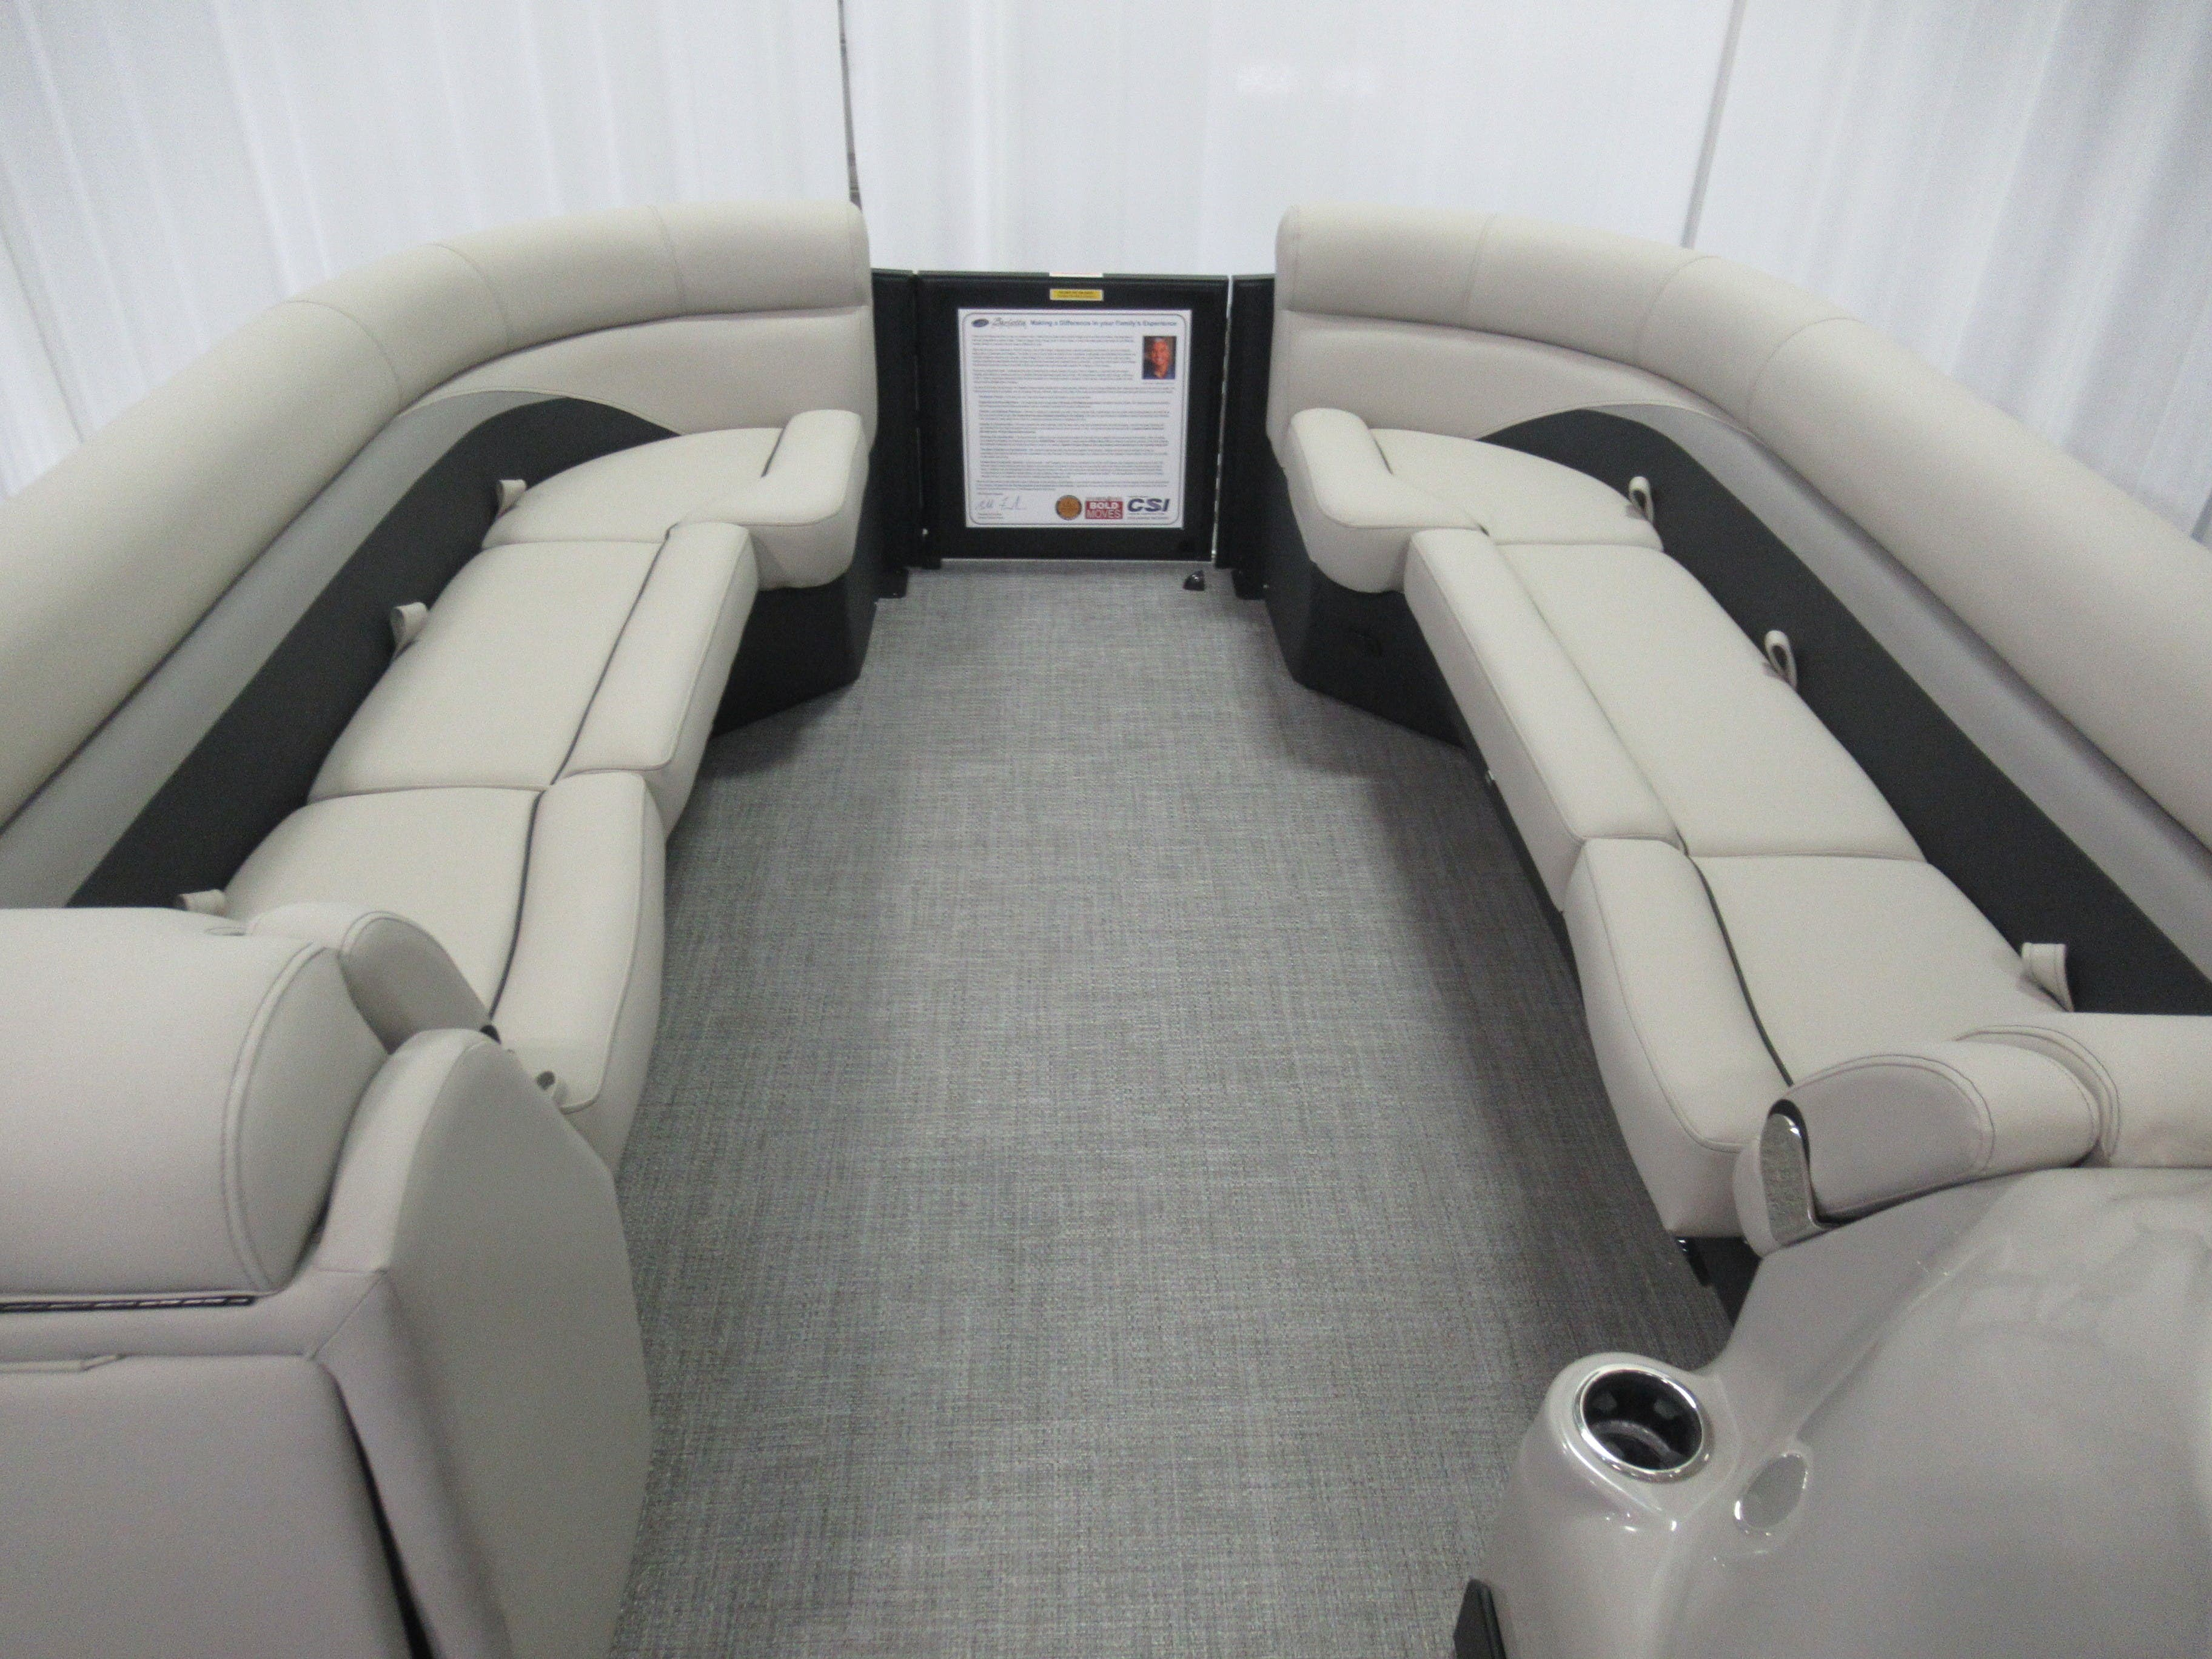 2021 Barletta boat for sale, model of the boat is C24uc & Image # 4 of 11